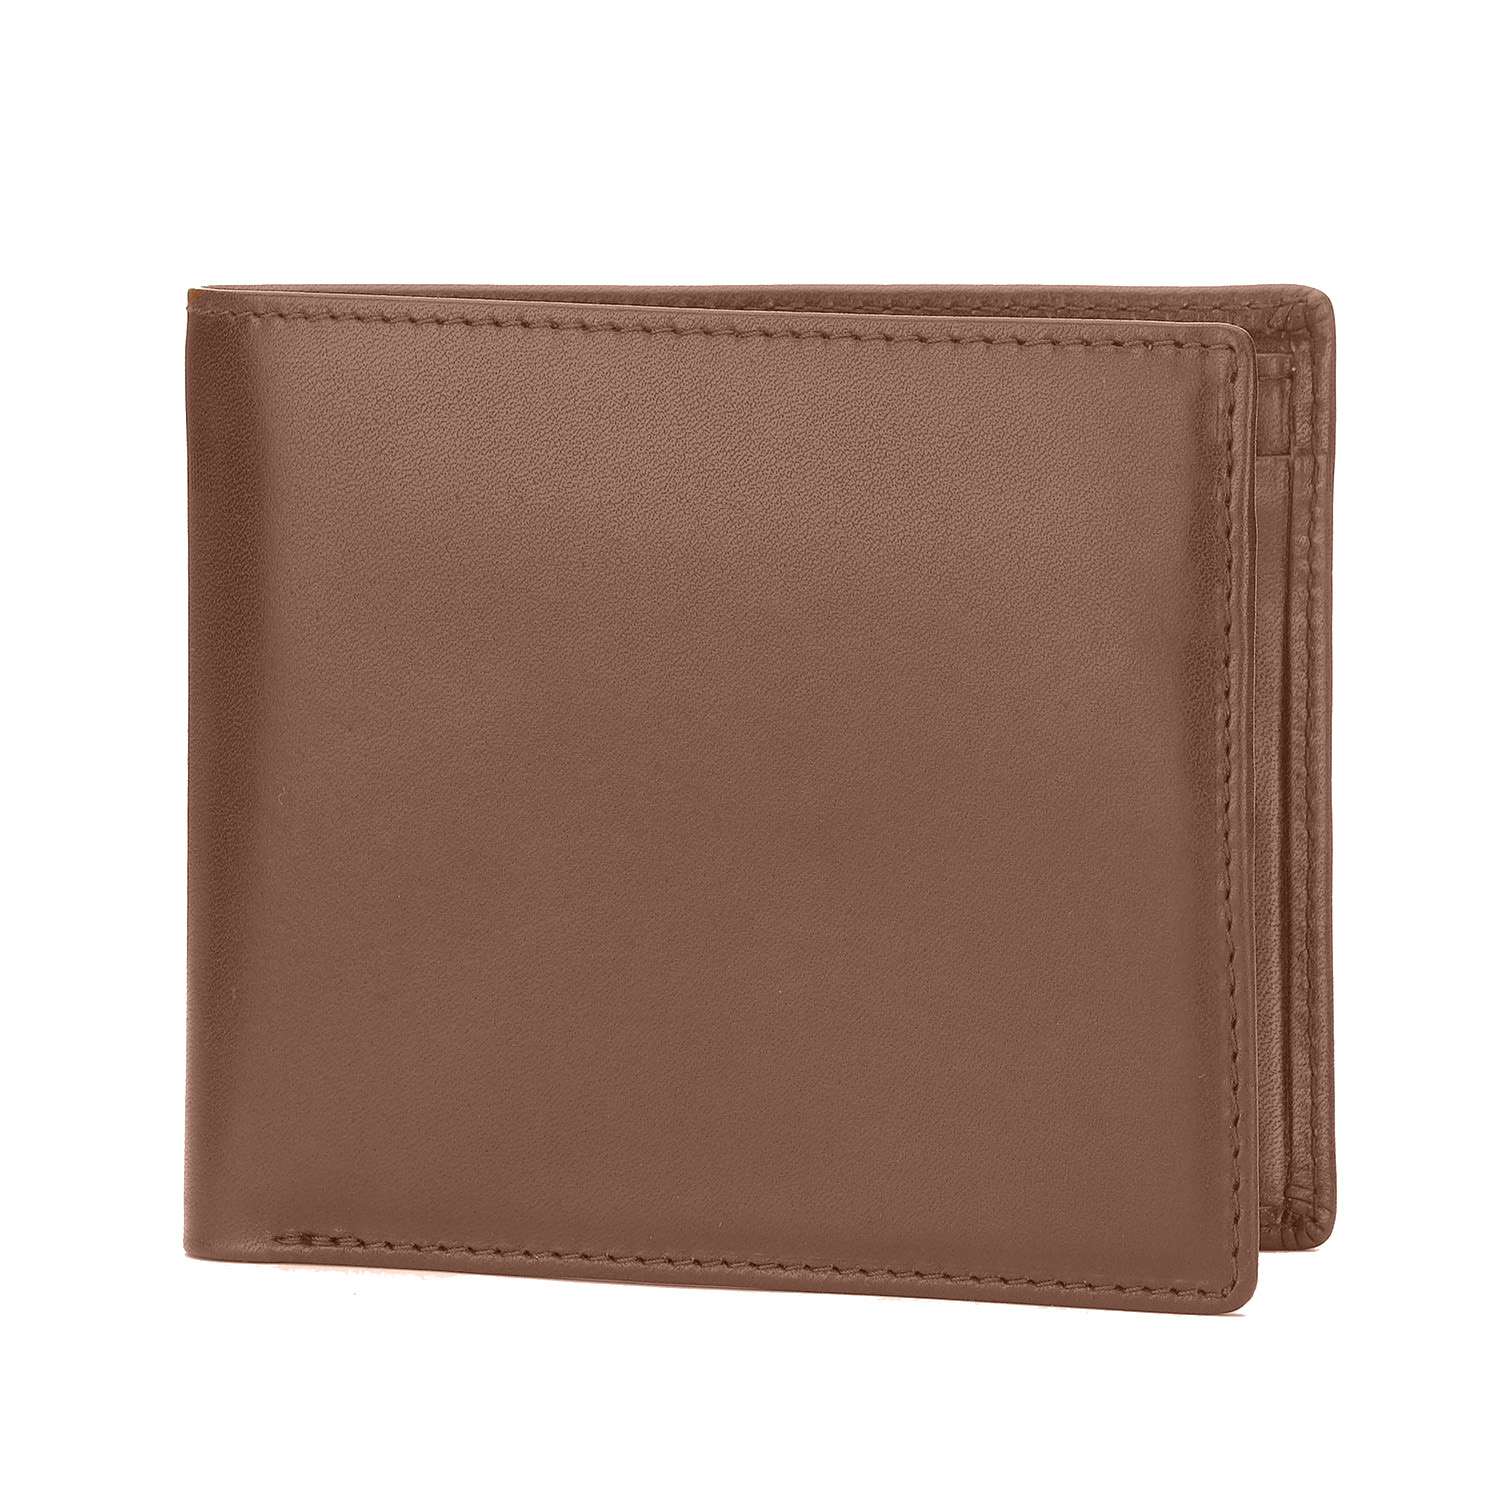 Tusting Broan Leather Wallet